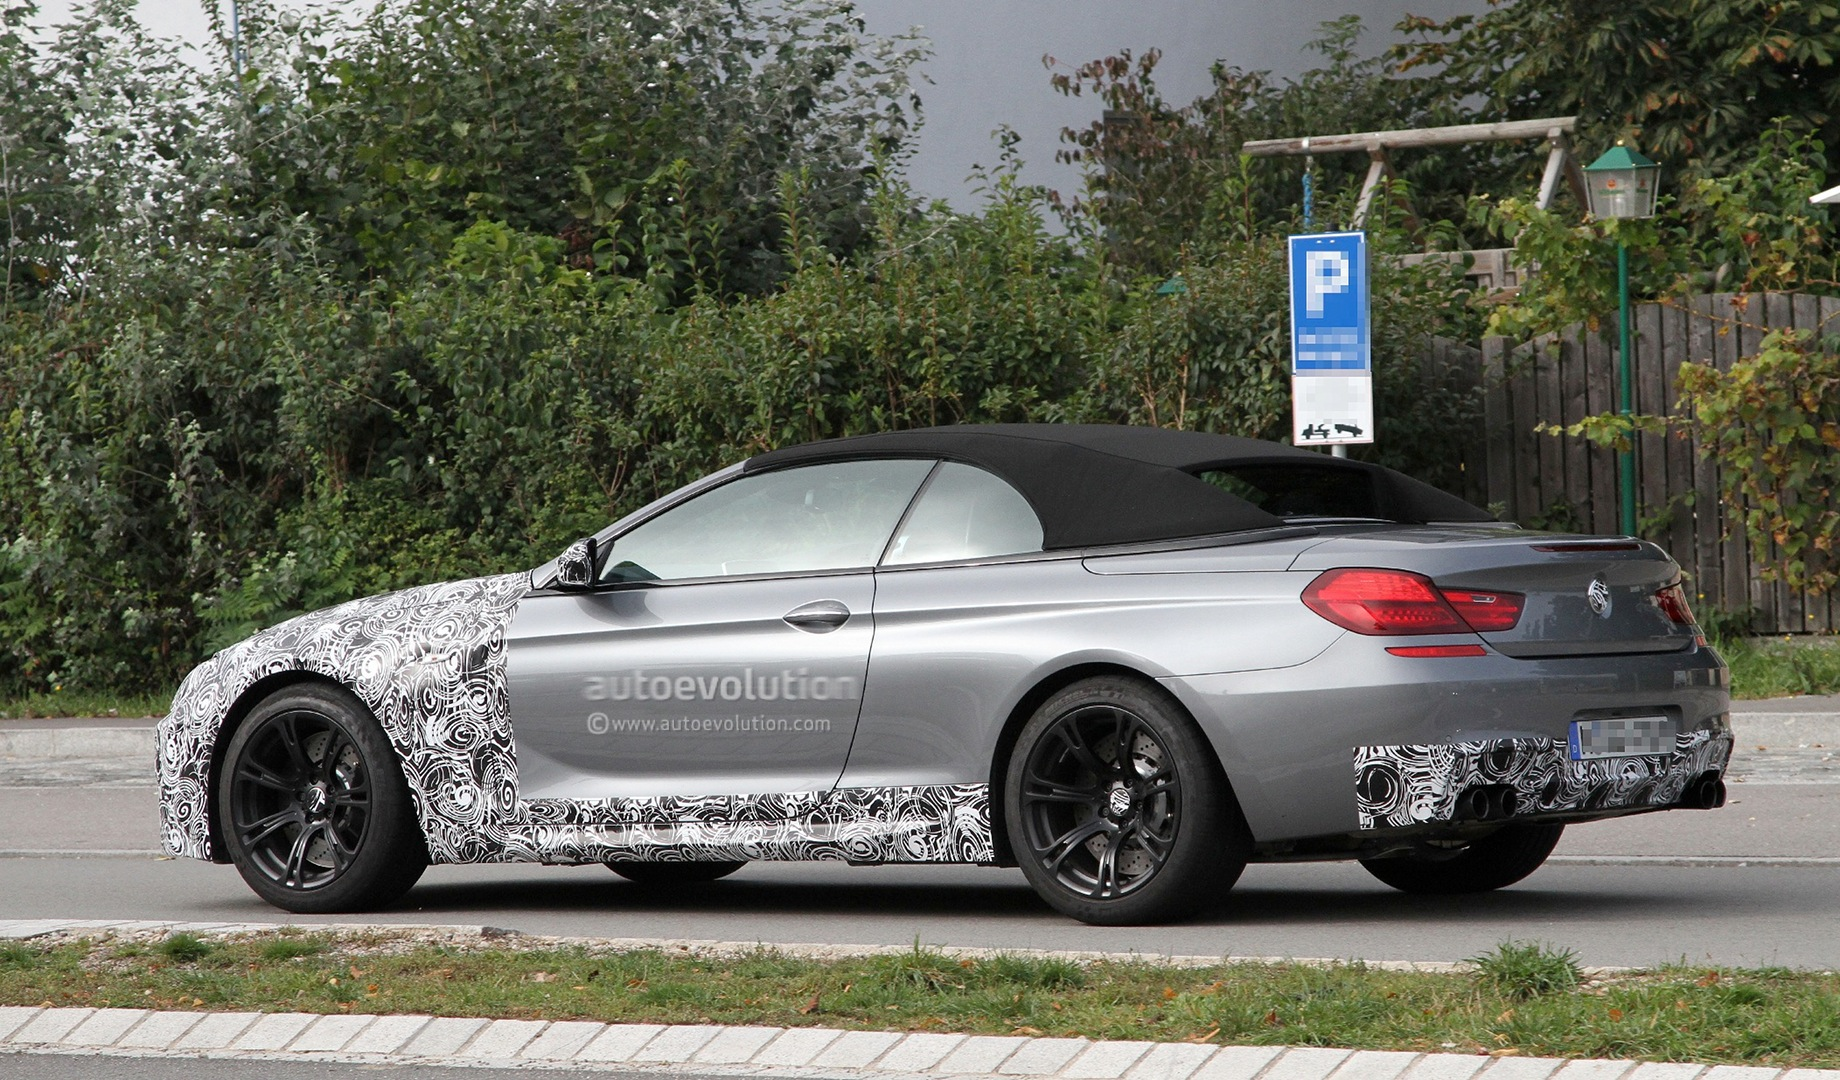 spyshots 2012 bmw m6 cabrio with less camouflage autoevolution. Black Bedroom Furniture Sets. Home Design Ideas